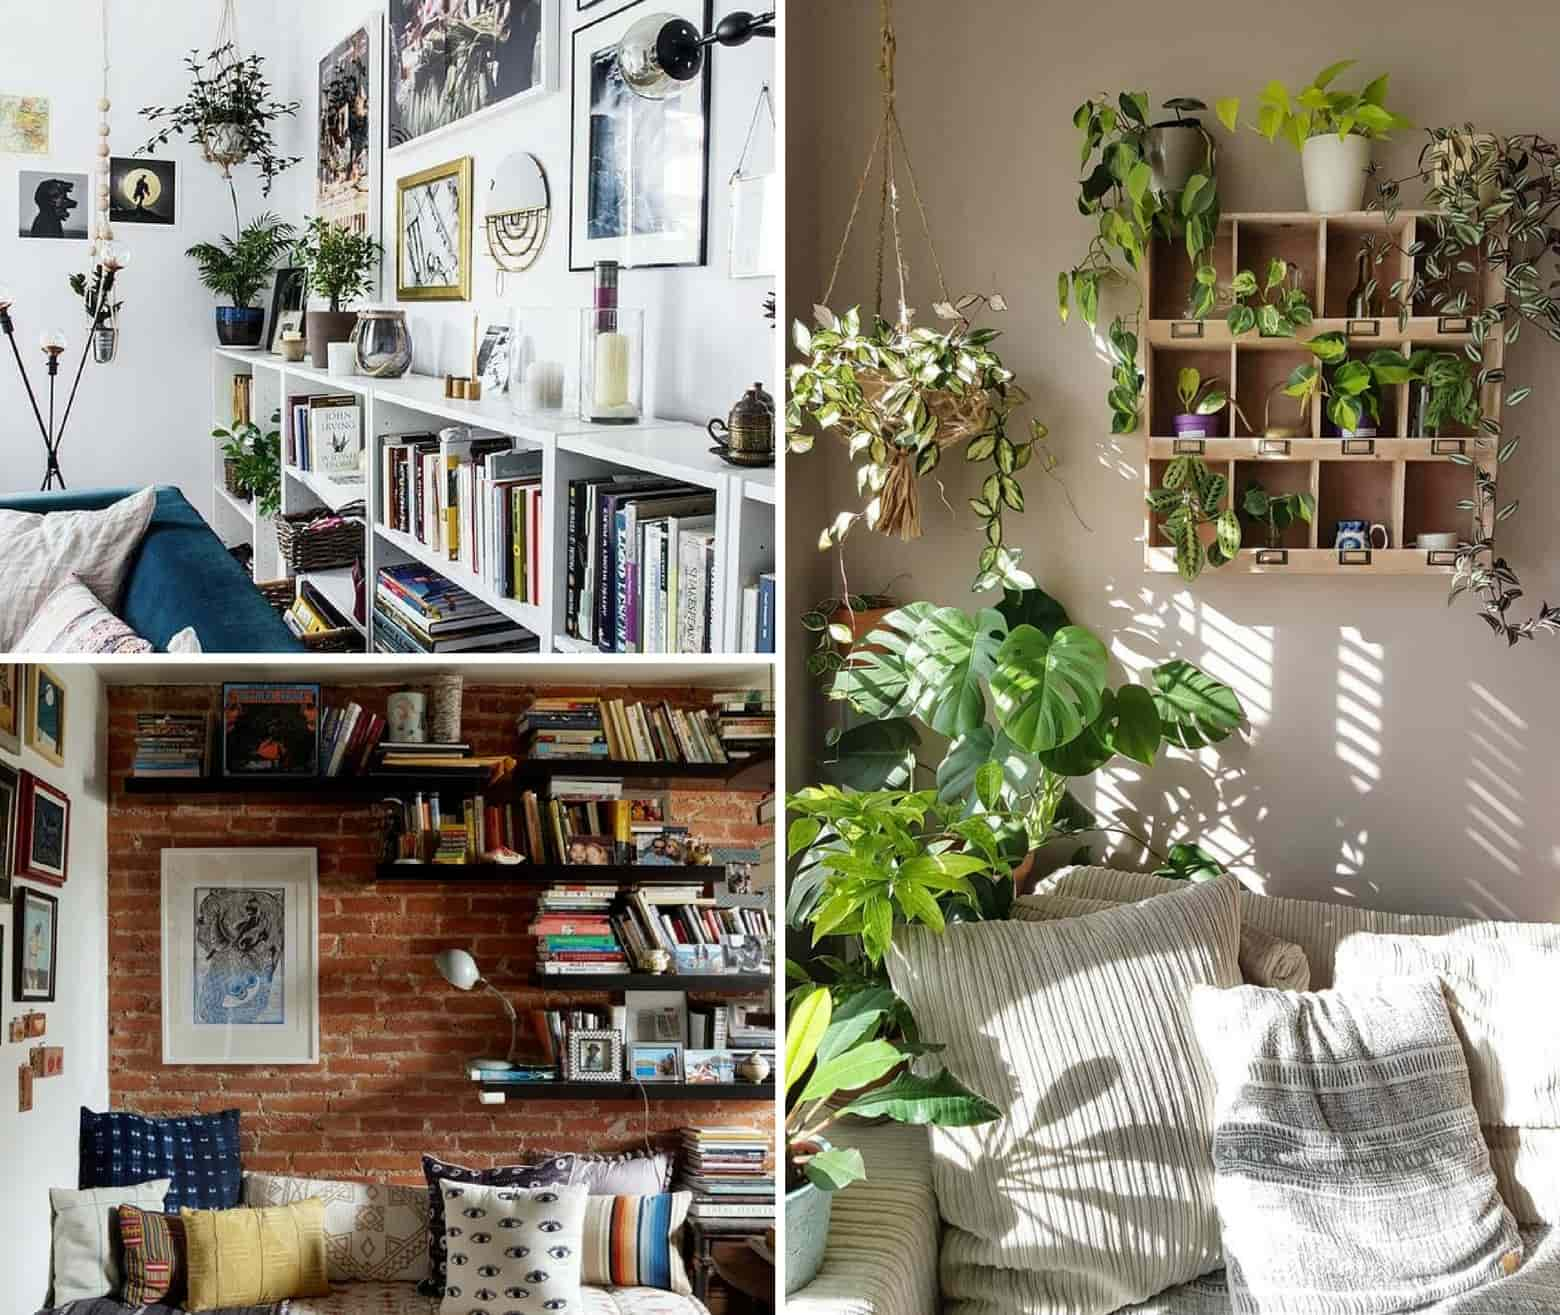 Decor Ideas with Plants - Living room inspiration